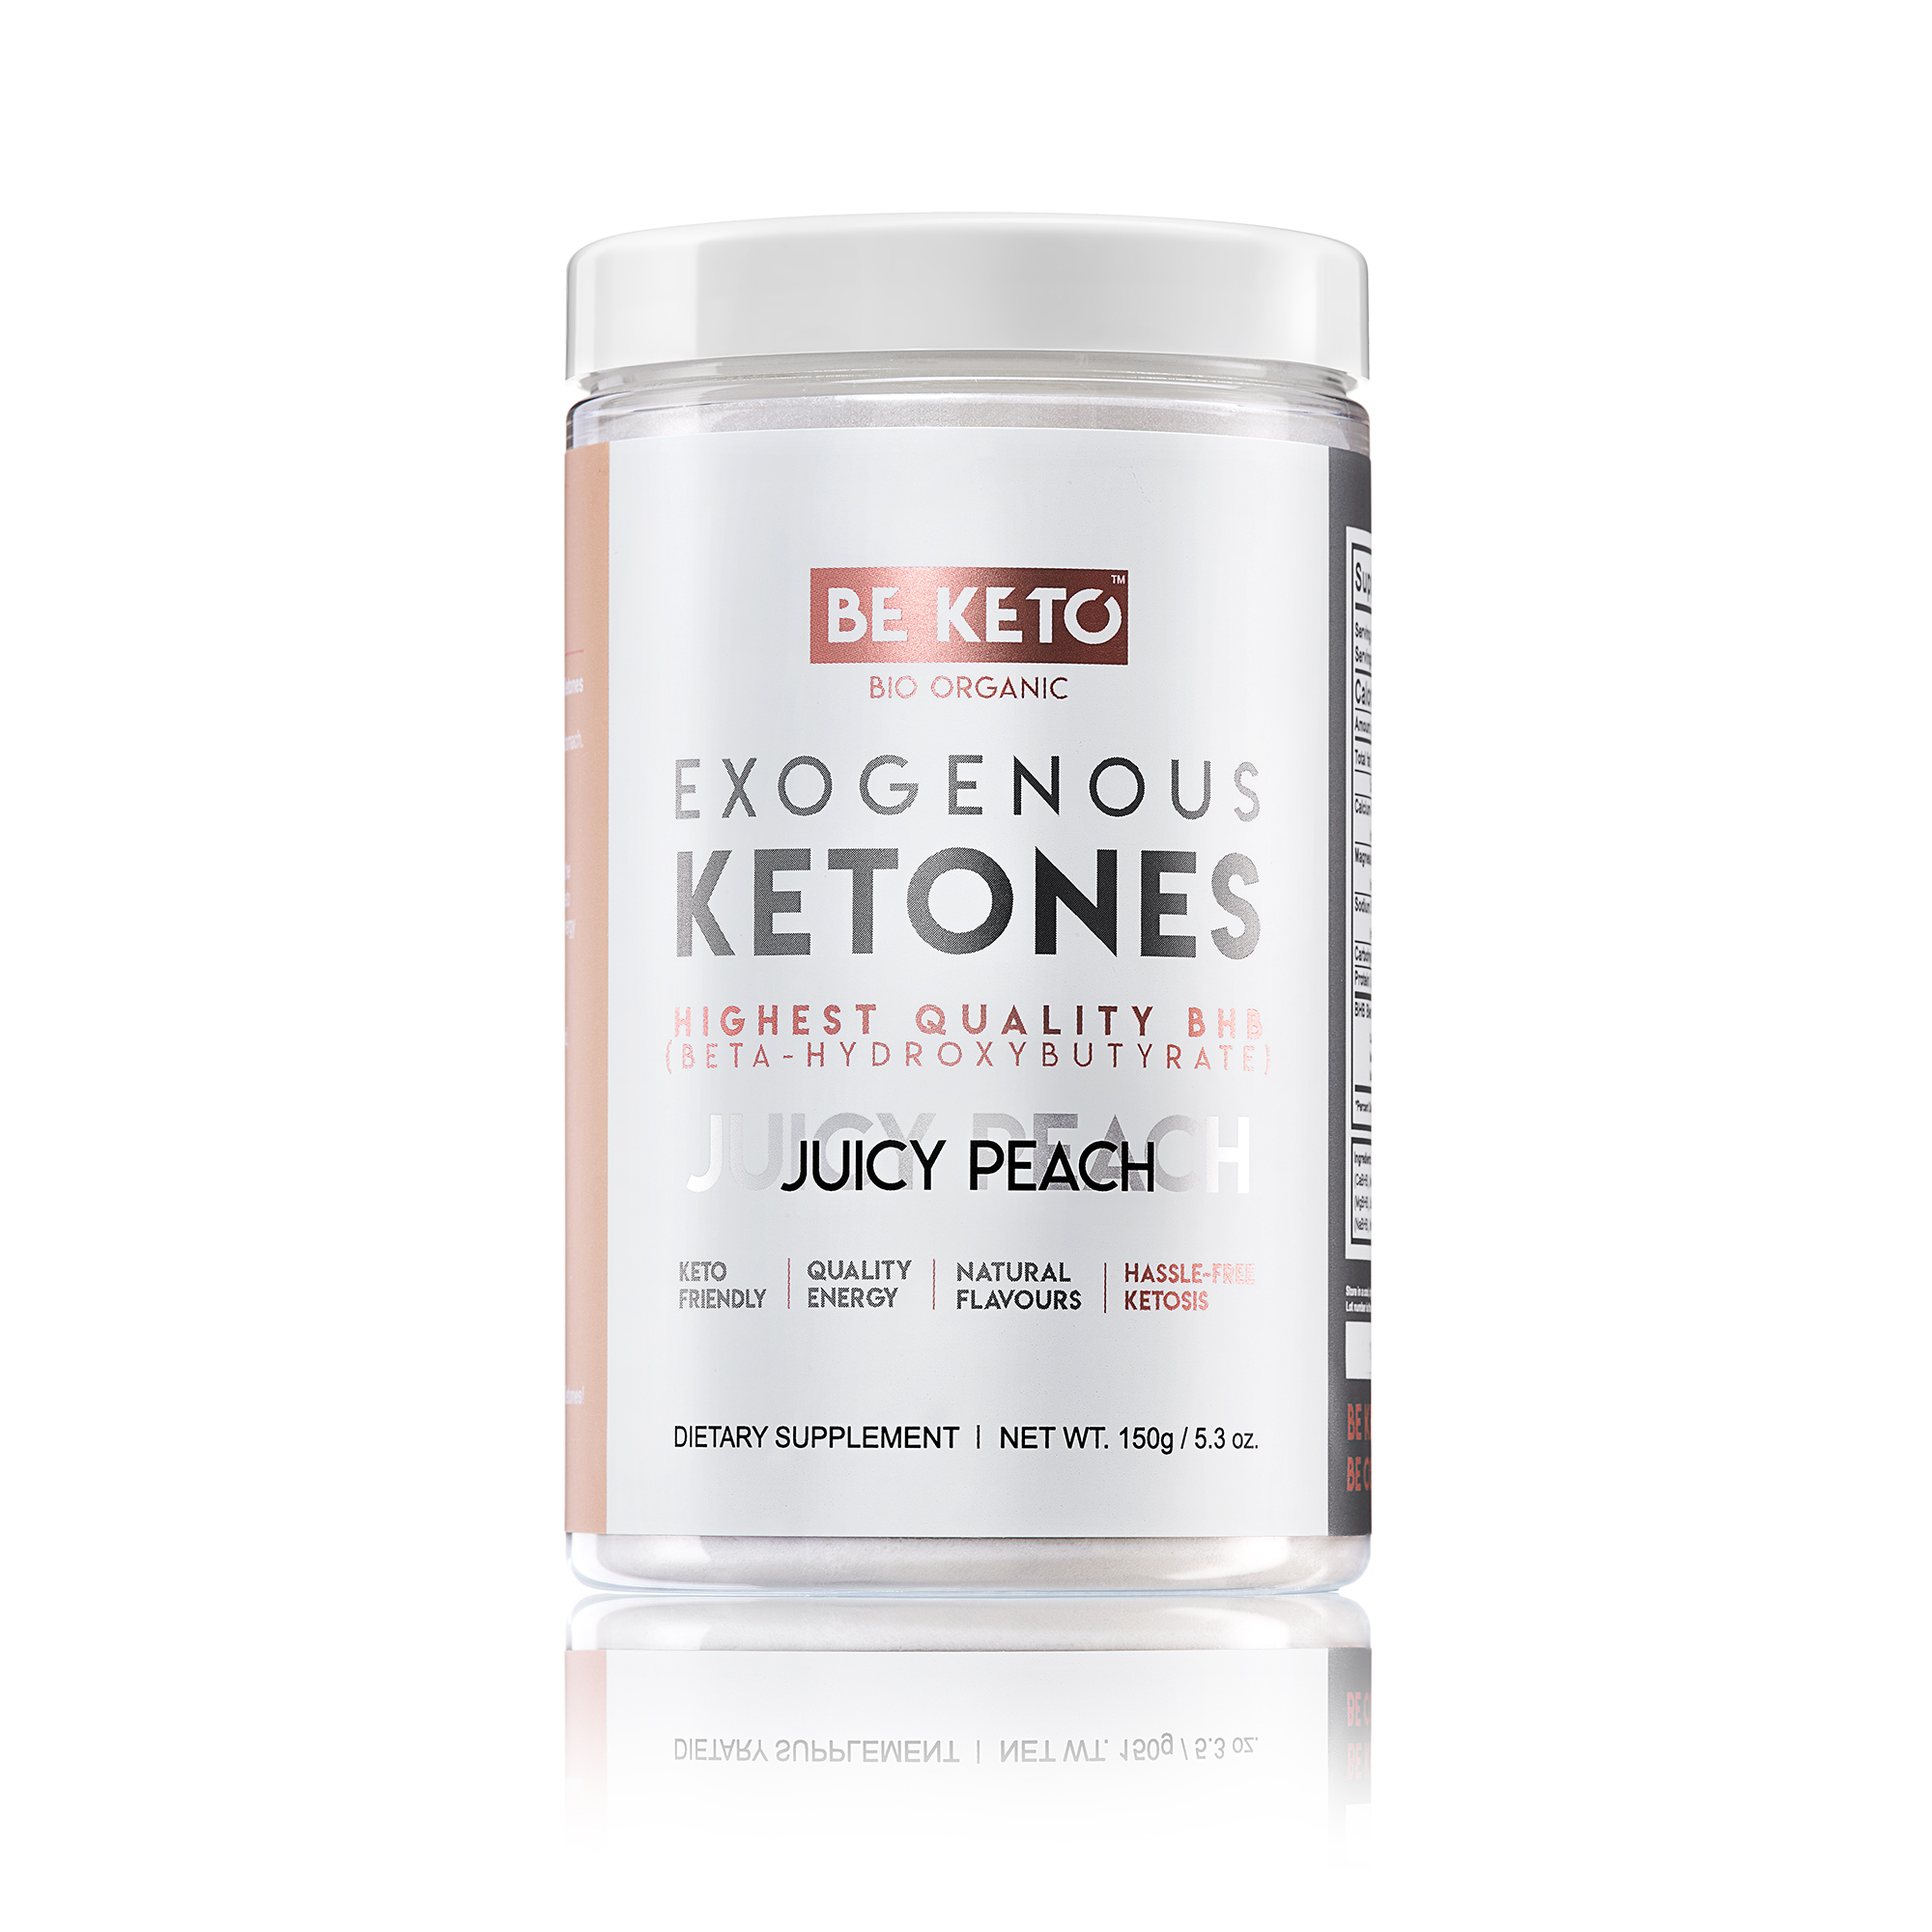 Exogenous Ketones - Juicy Peach